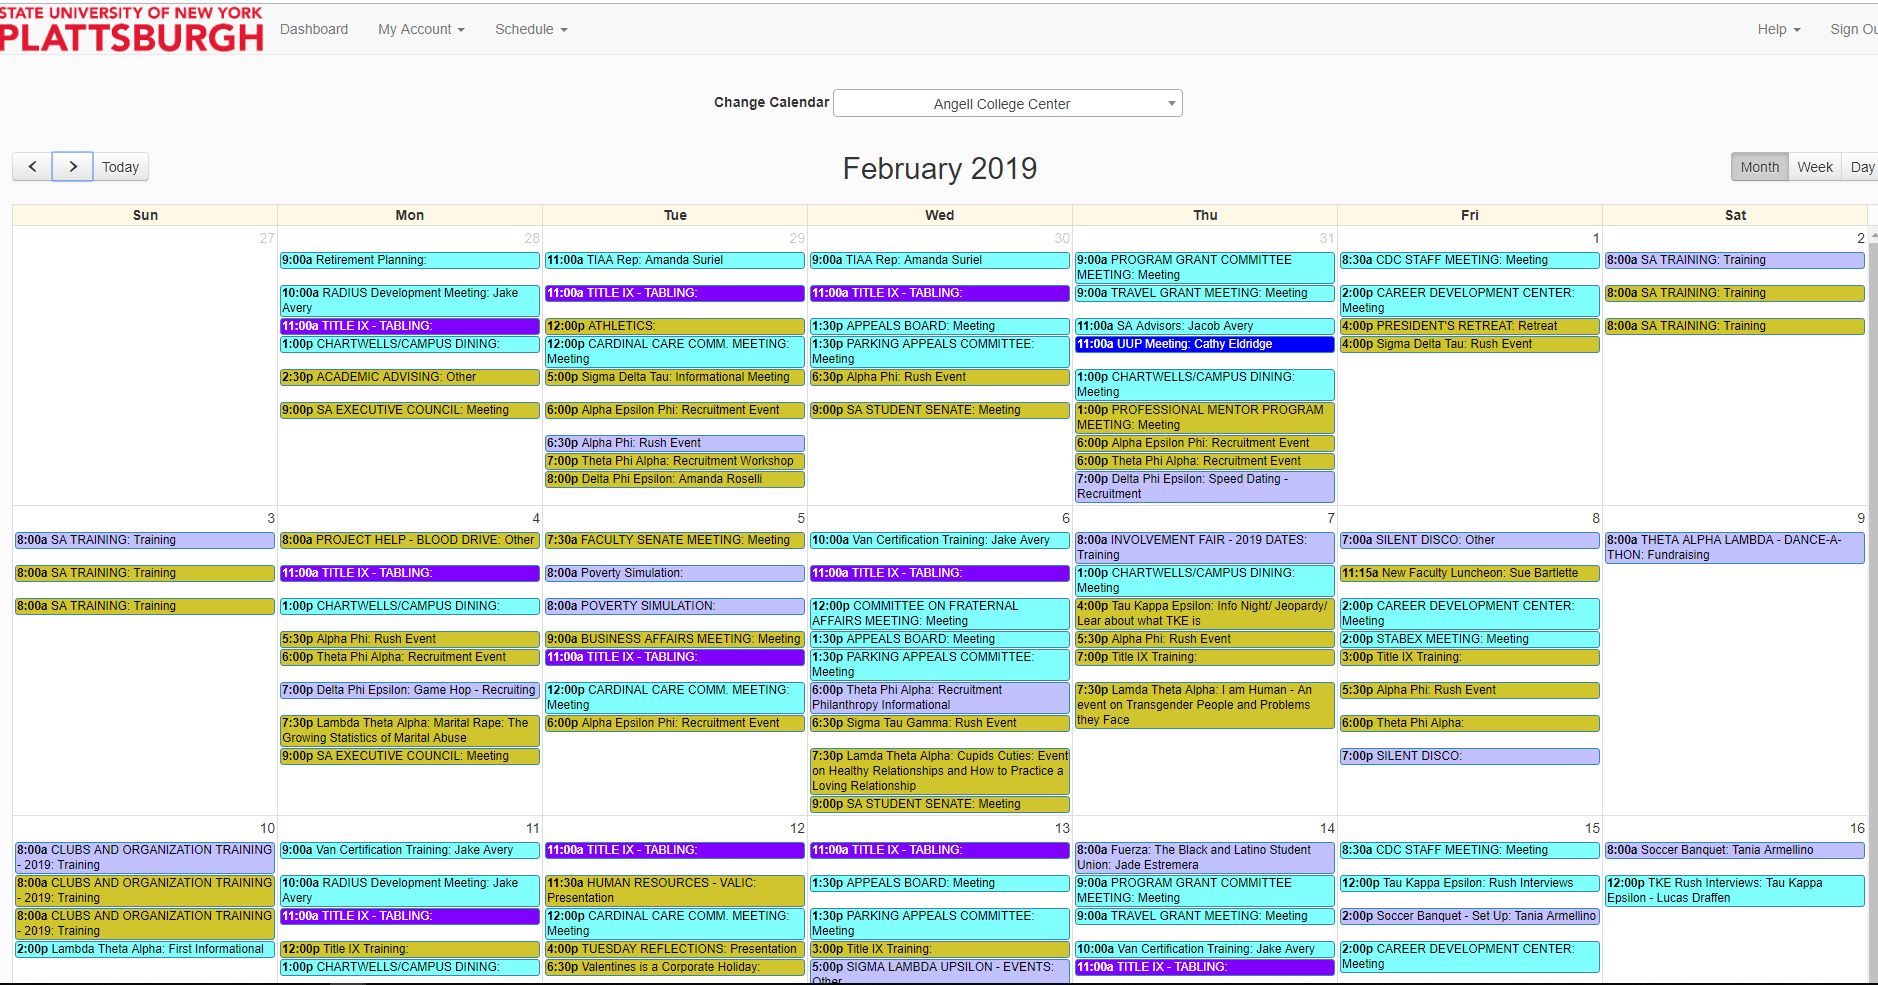 Resource Calendar View